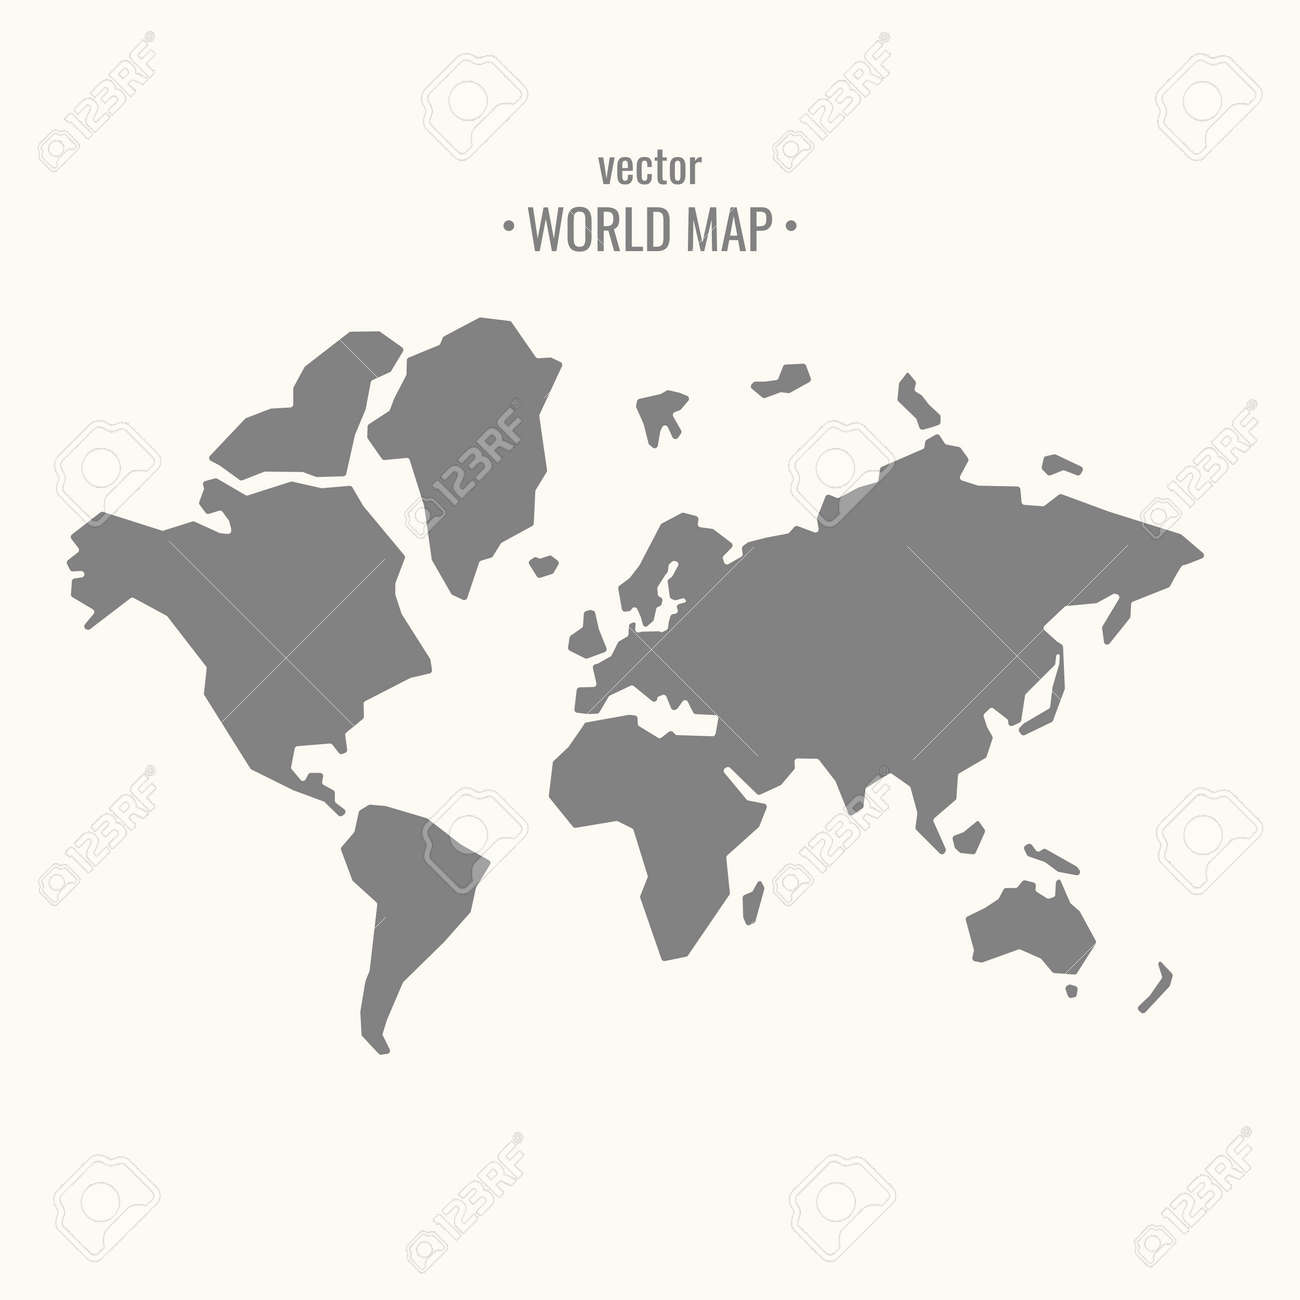 Vector illustration of world map in trendy flat minimal style vector vector illustration of world map in trendy flat minimal style on a light background gumiabroncs Gallery